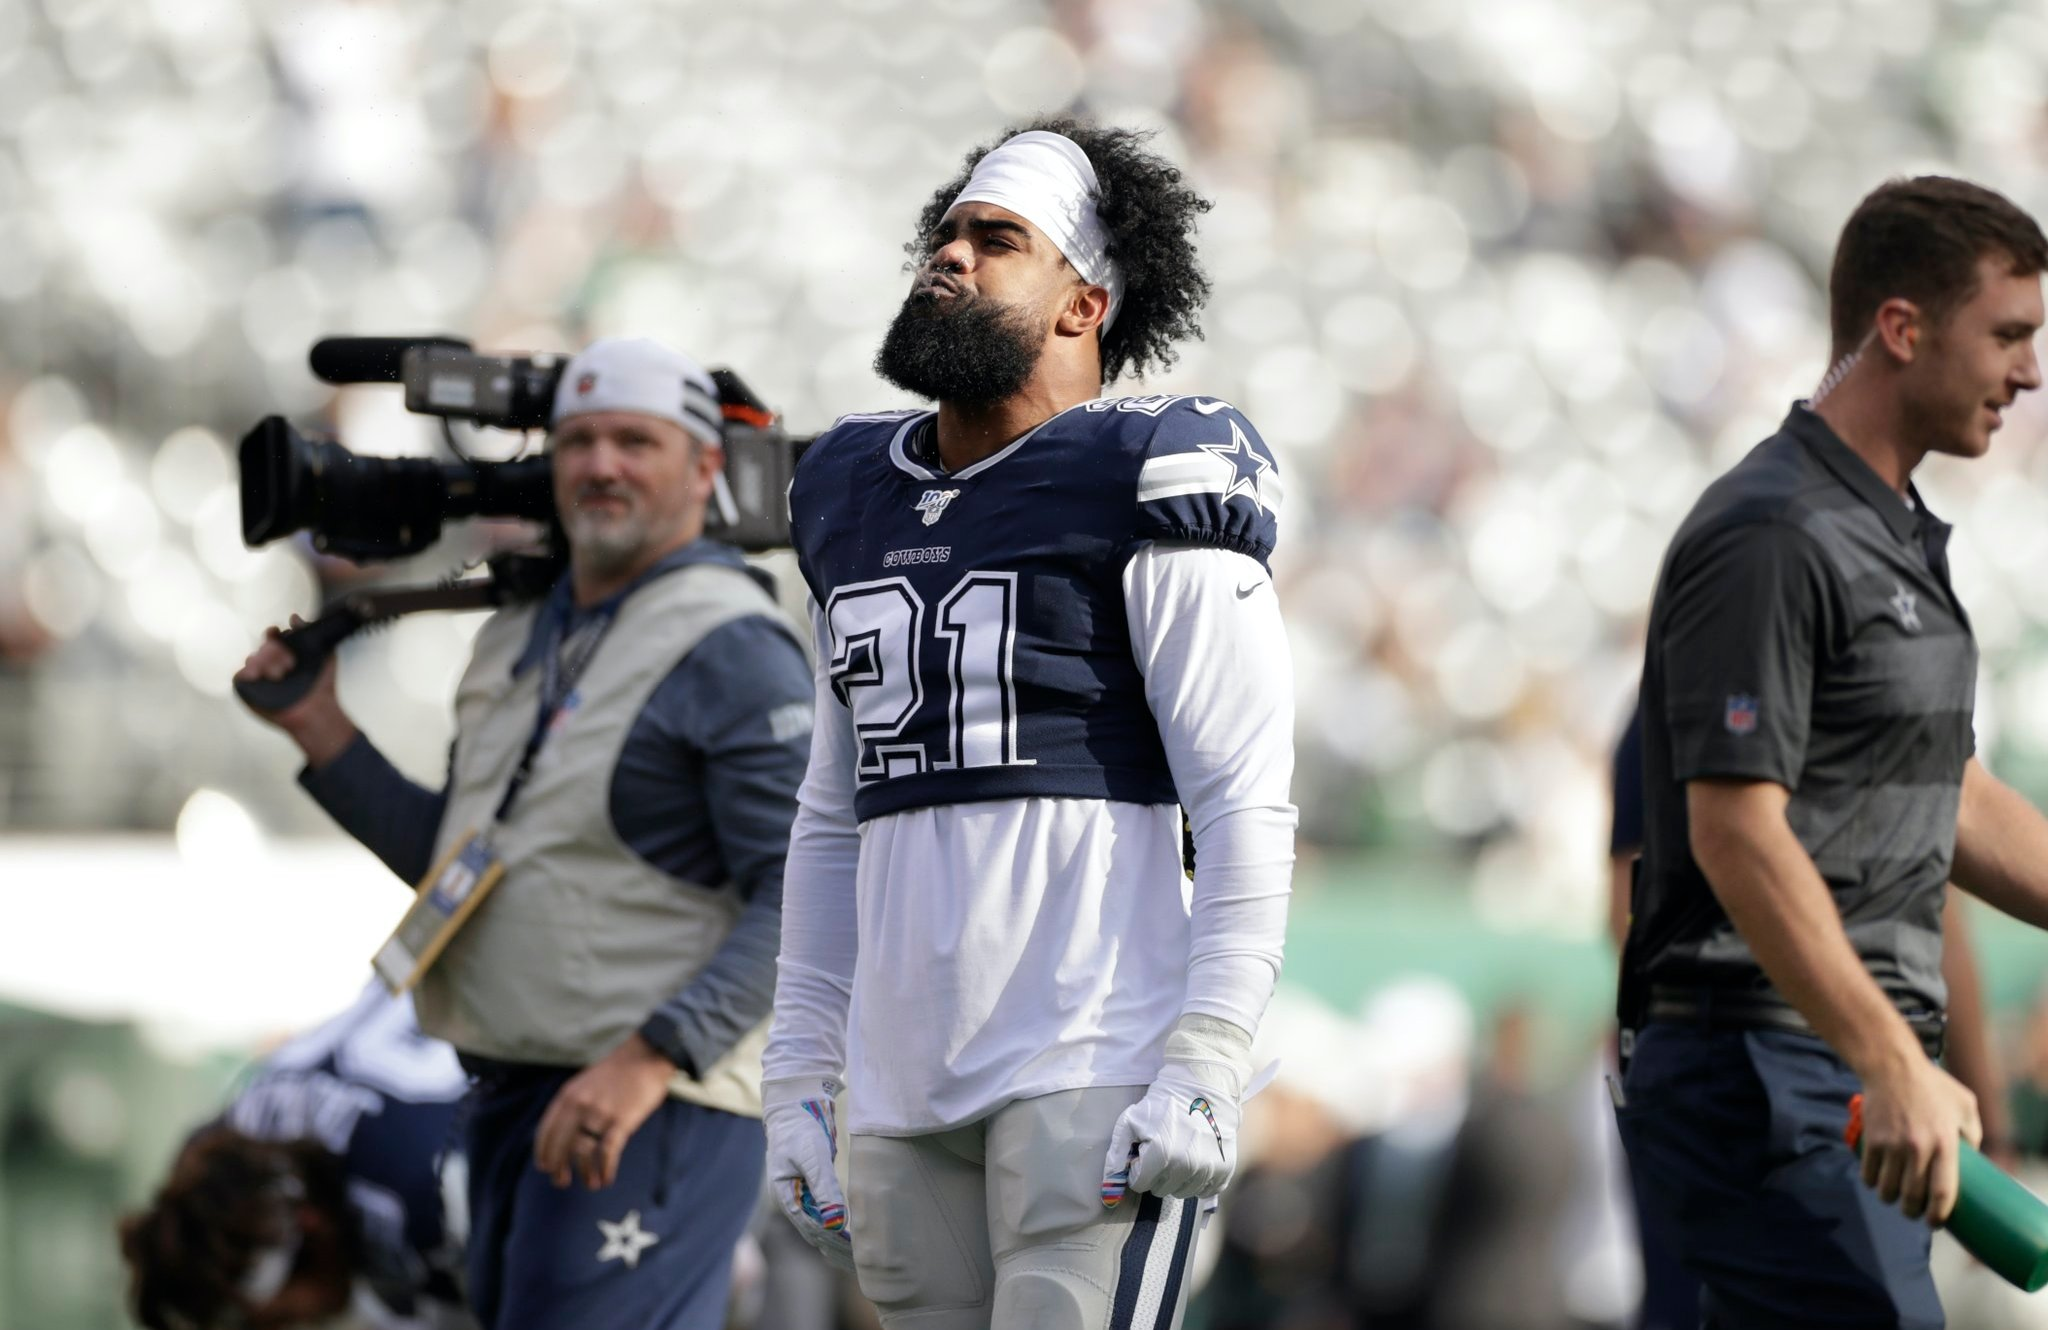 Ezekiel Elliott led Near Comeback vs Jets, Needs to be Focal Point Going Forward